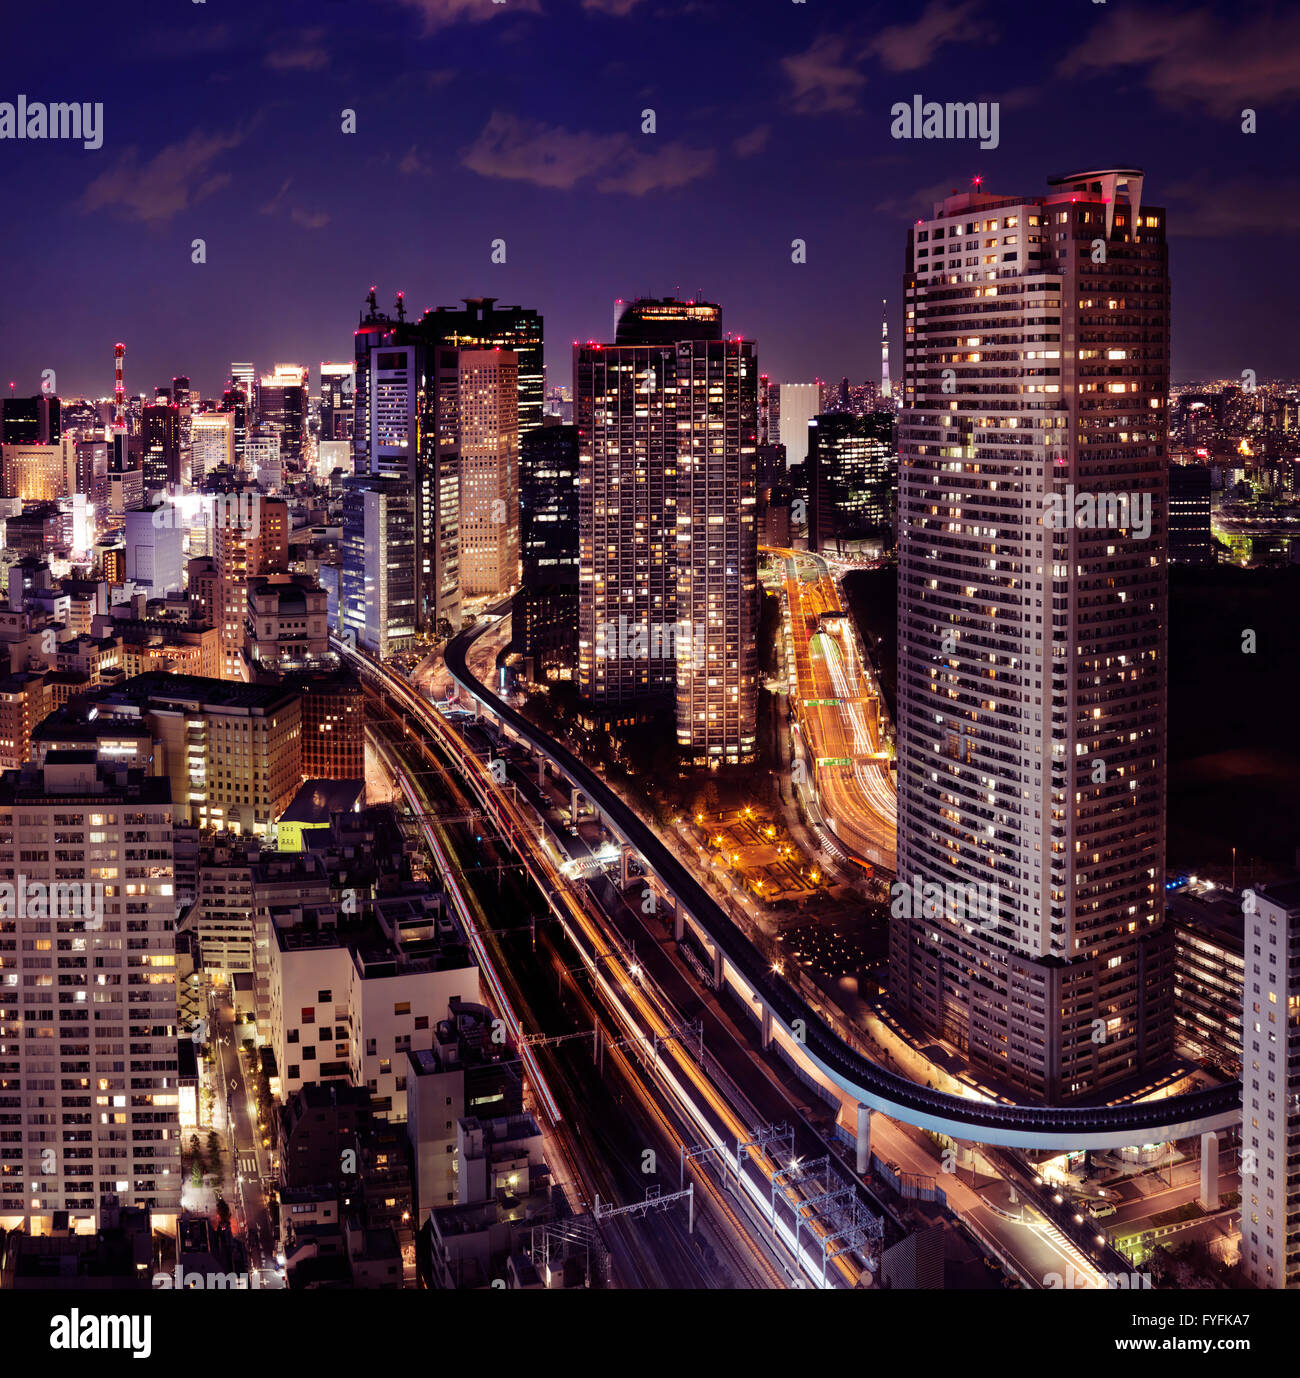 Highways and train lines at night, Minato, Tokyo, Japan - Stock Image